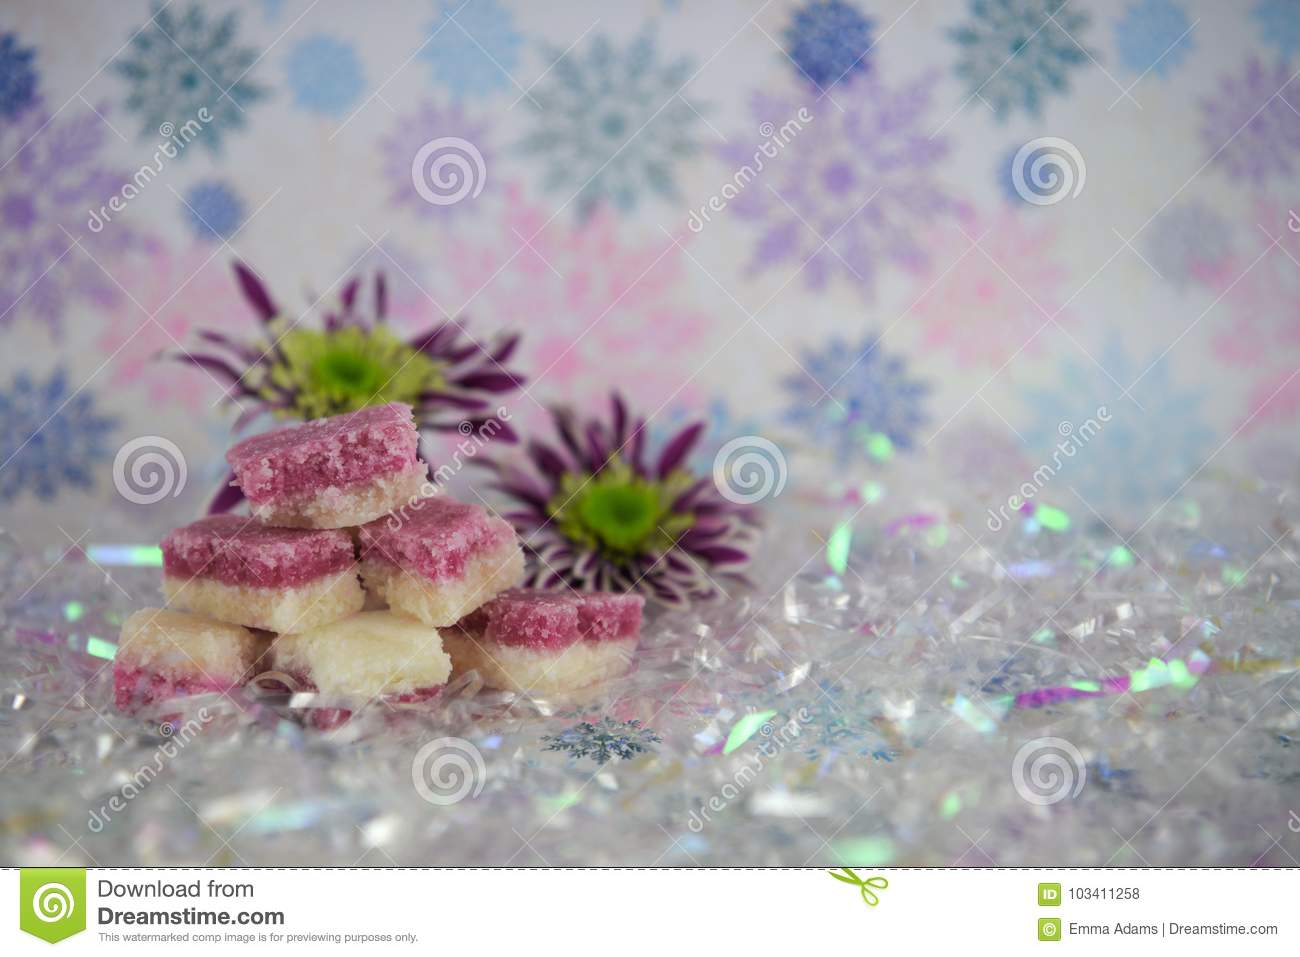 Pretty christmas food photography picture of english old fashioned coconut ice treats on pastel colour glitter snowflake pattern wrapping paper background and shiny shimmer gift wrap and with english winter flowers mightylinksfo